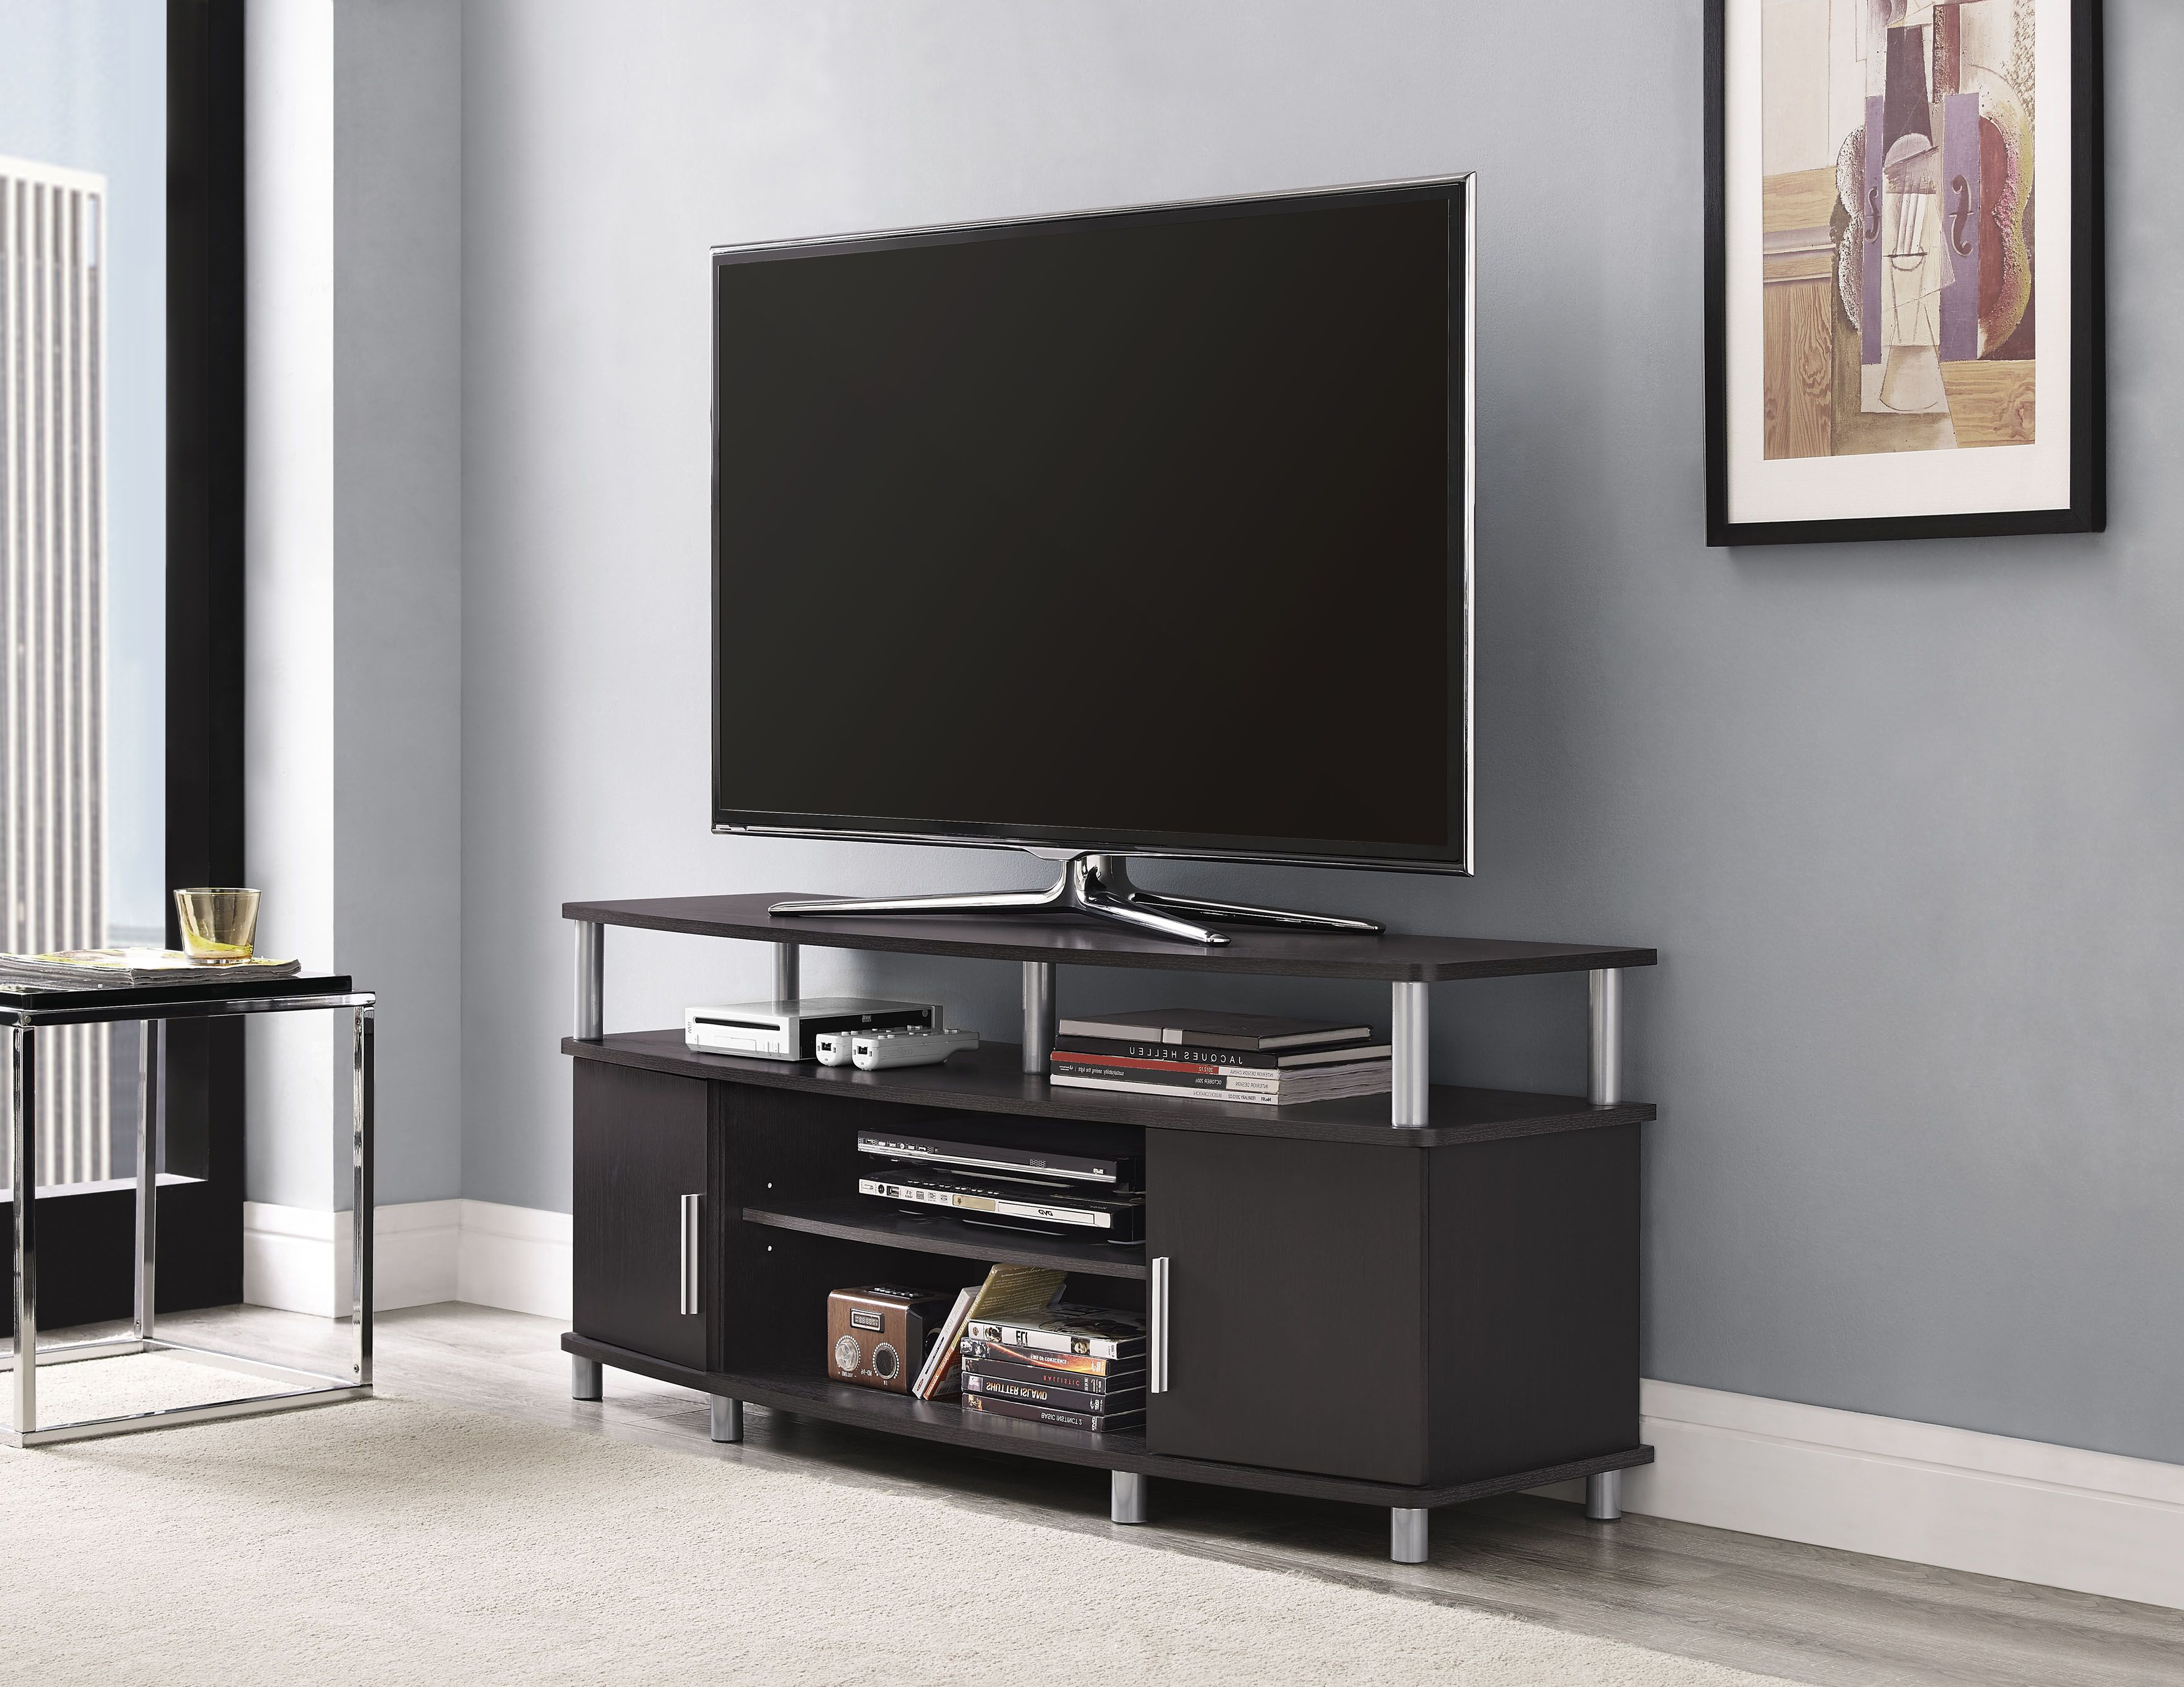 Dorel Home Furnishings Carson Tv Stand Multiple Colors, Black/red Within Well Known Red Modern Tv Stands (Gallery 12 of 20)